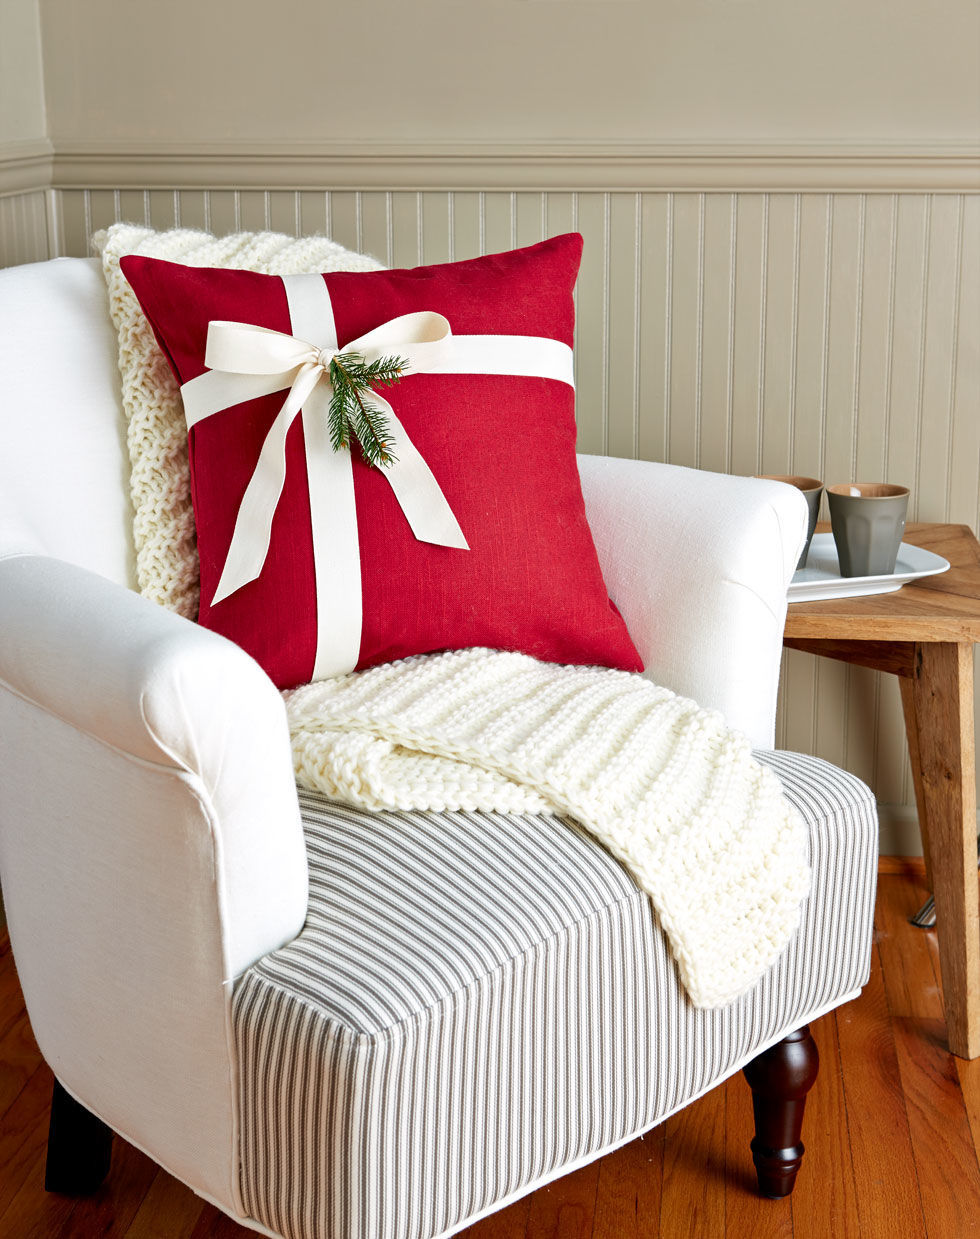 Diy christmas chair covers - Full And More Detailed Tutorial Iheartnaptime